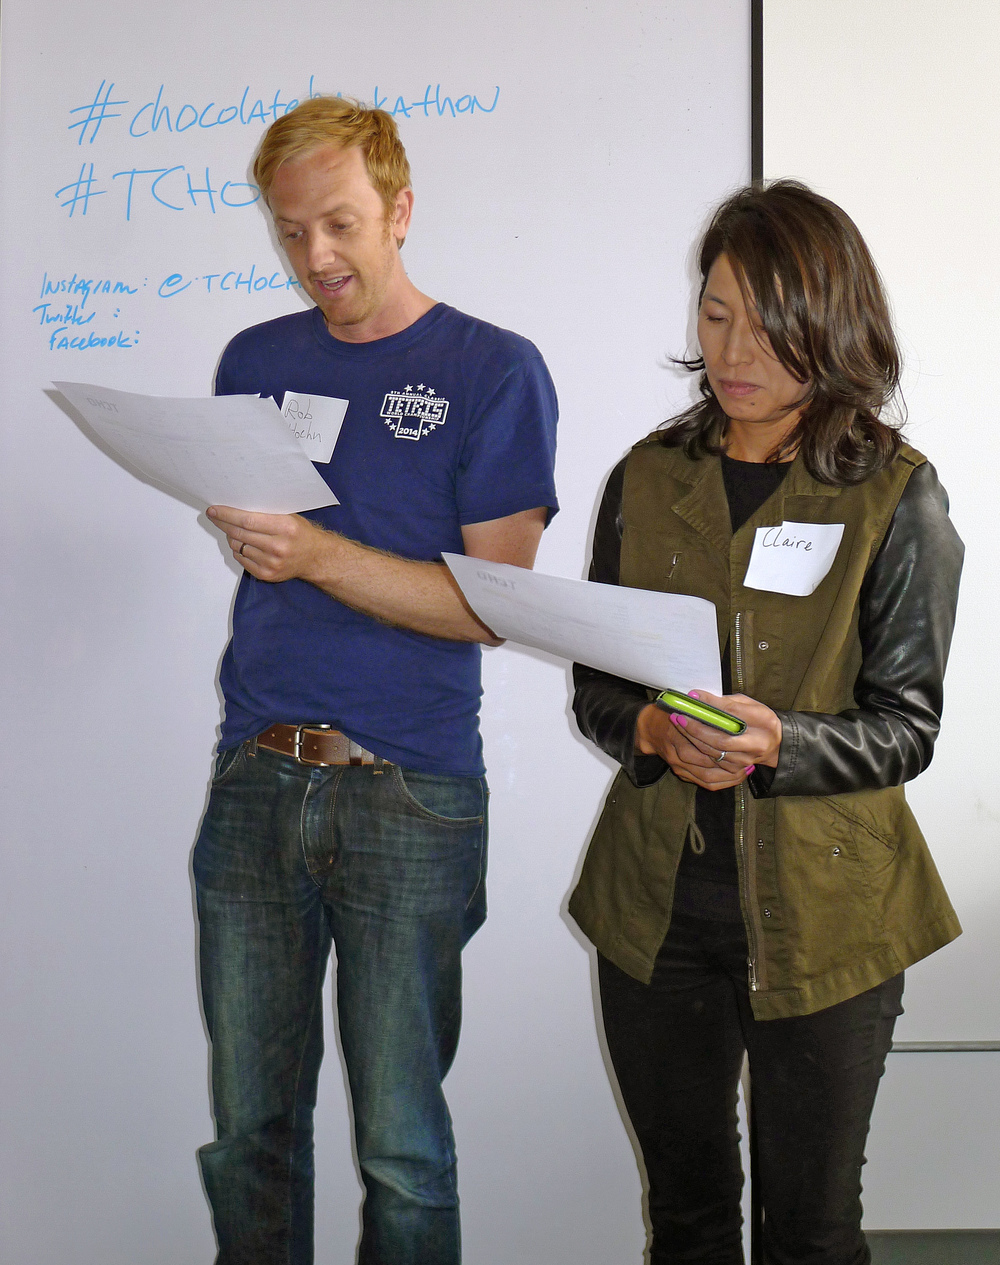 tcho-hackathon-april-252015_16708159233_o.jpg